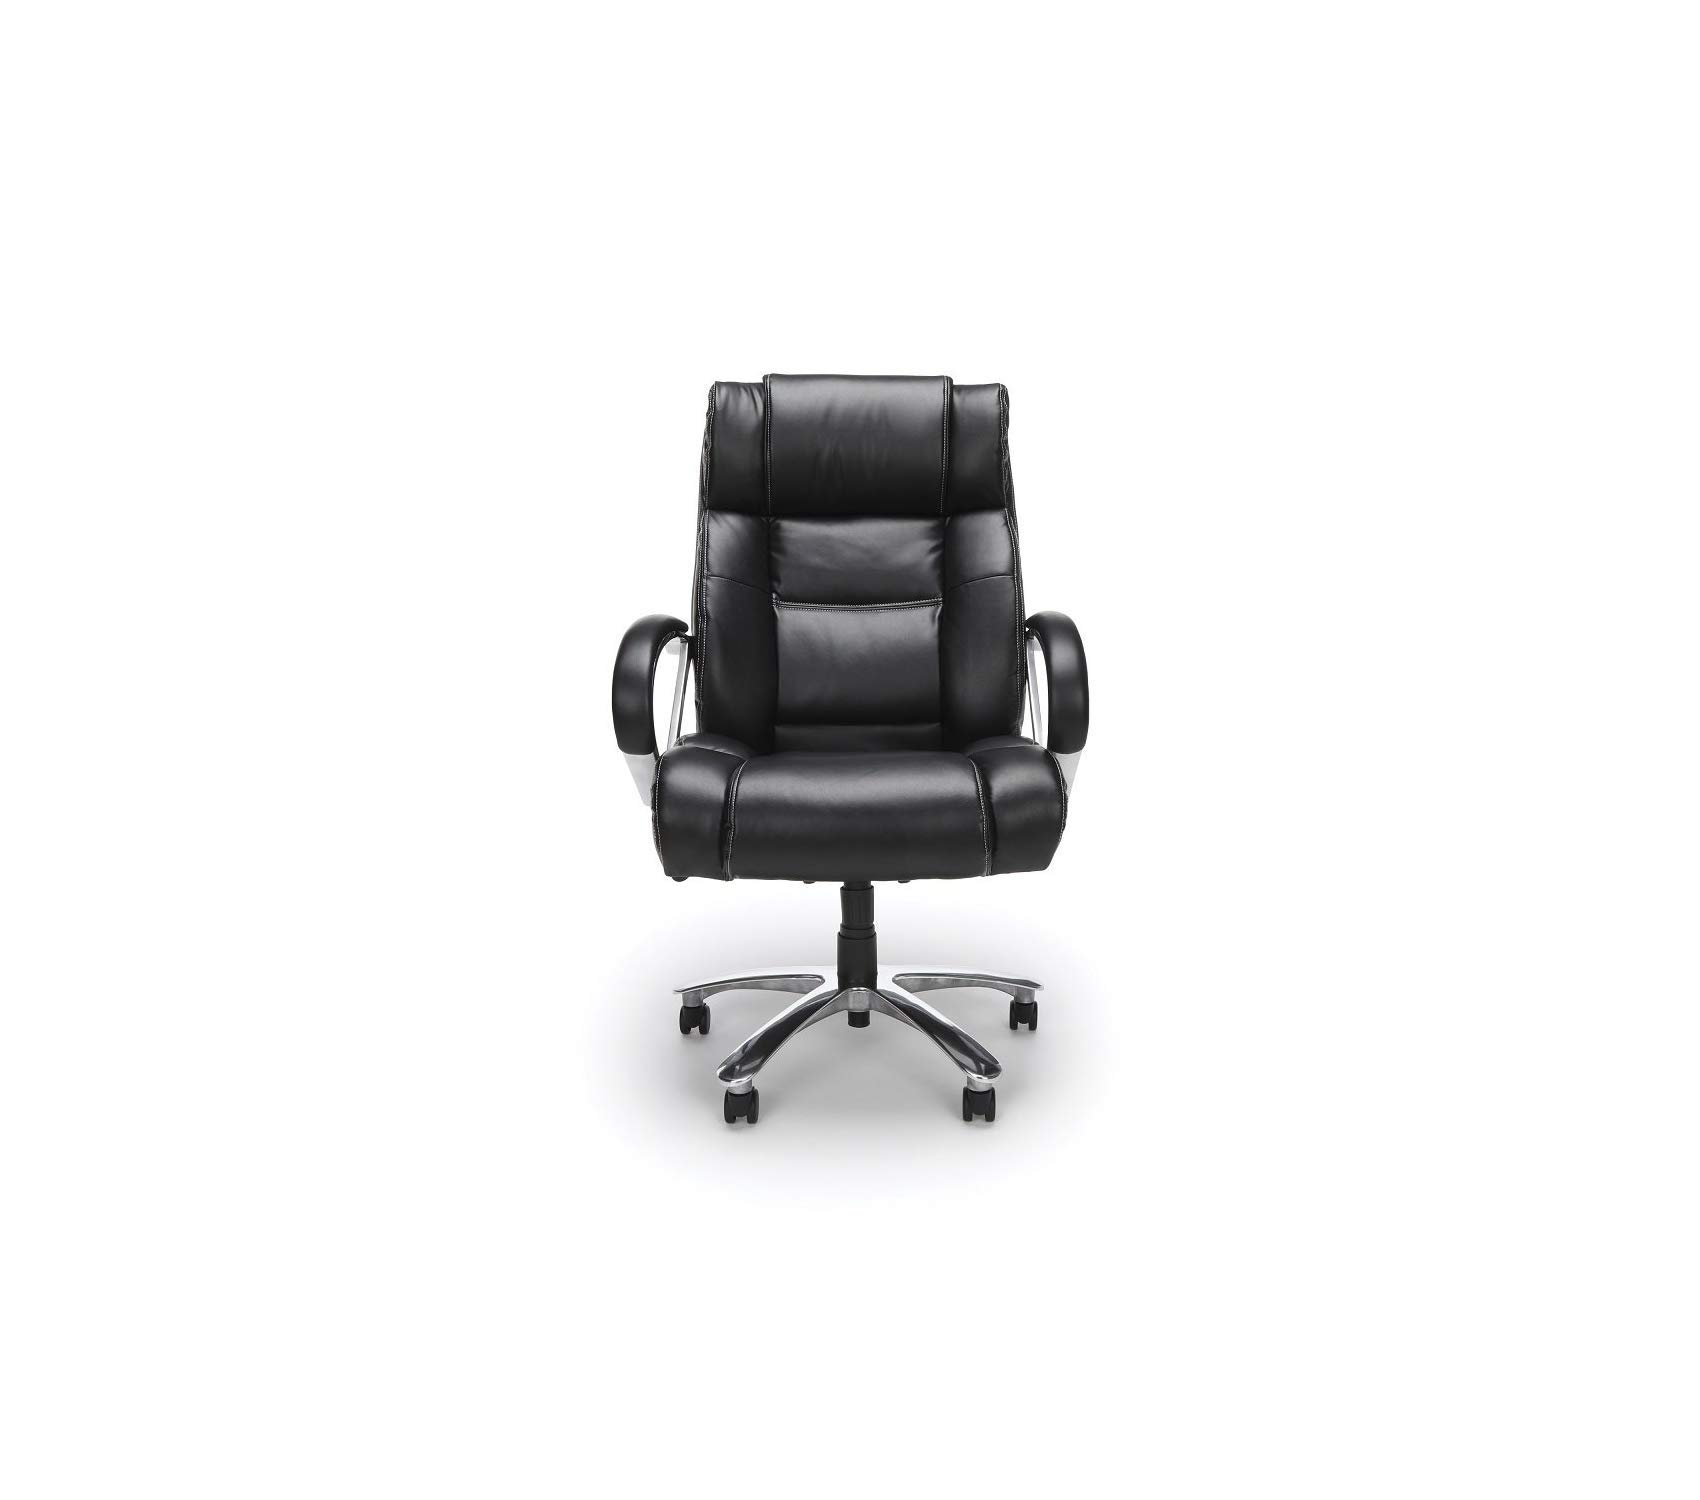 Оfm Avenger Series Big and Tall Leather Executive Chair - Black Computer Chair with Arms, Black/Chrome by Оfm (Image #2)